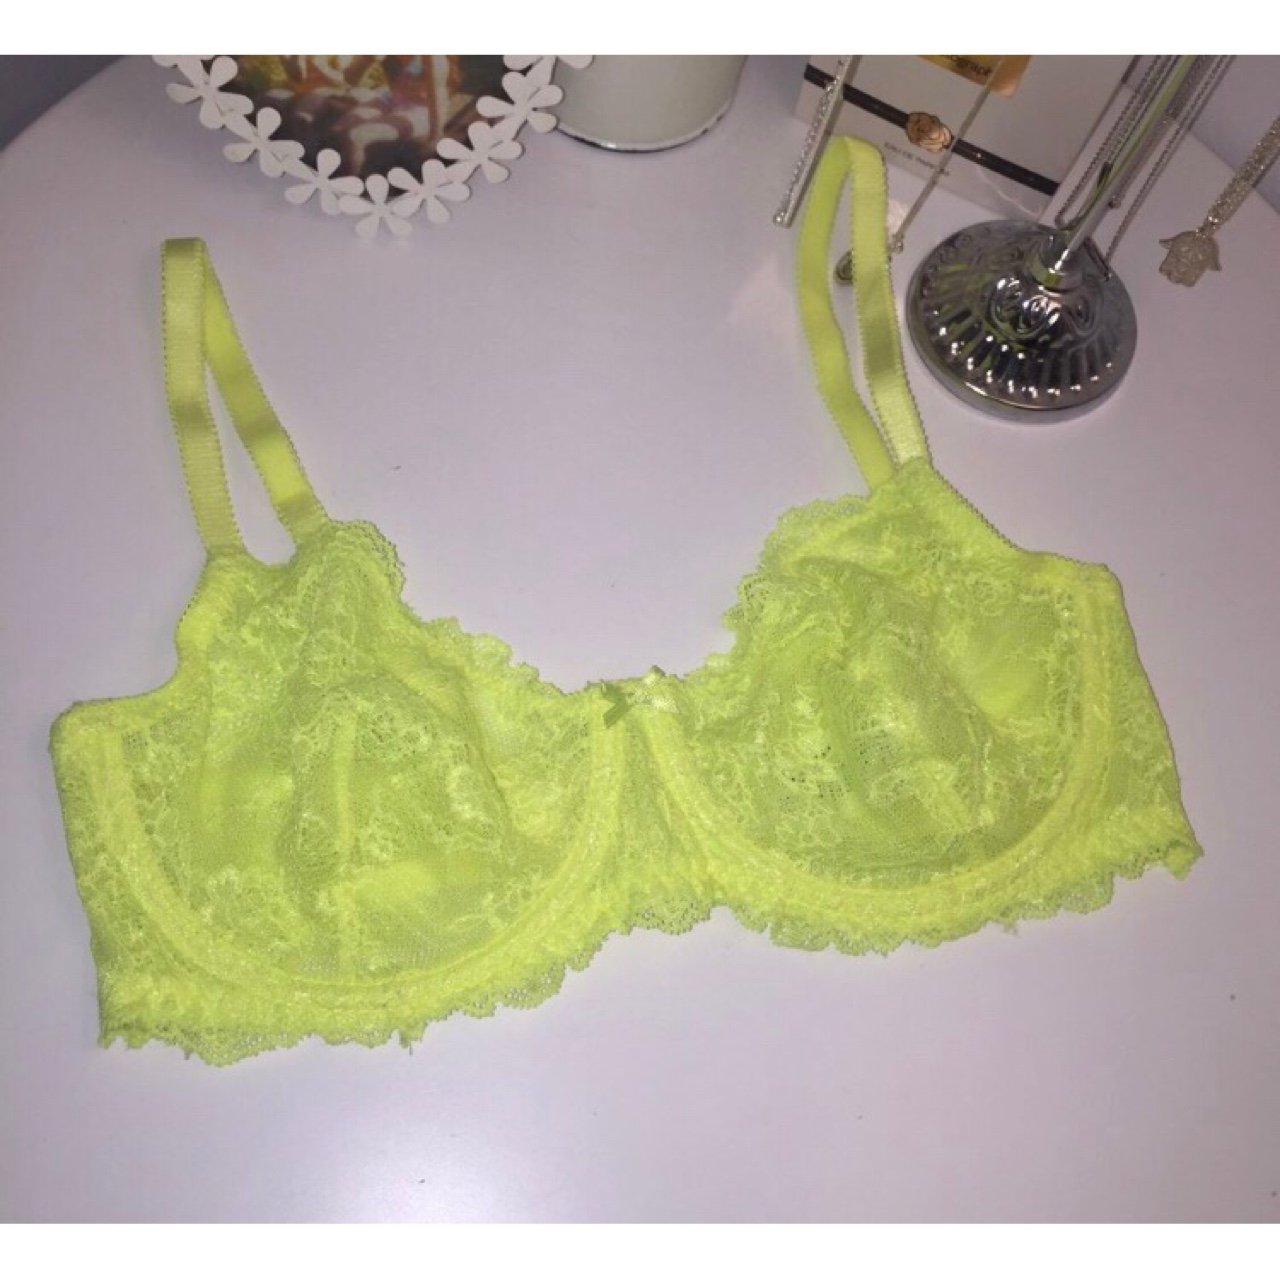 a17fcb01b0155 Neon yellow lace bra never worn only to model in pic size depop jpg  1280x1280 Yellow